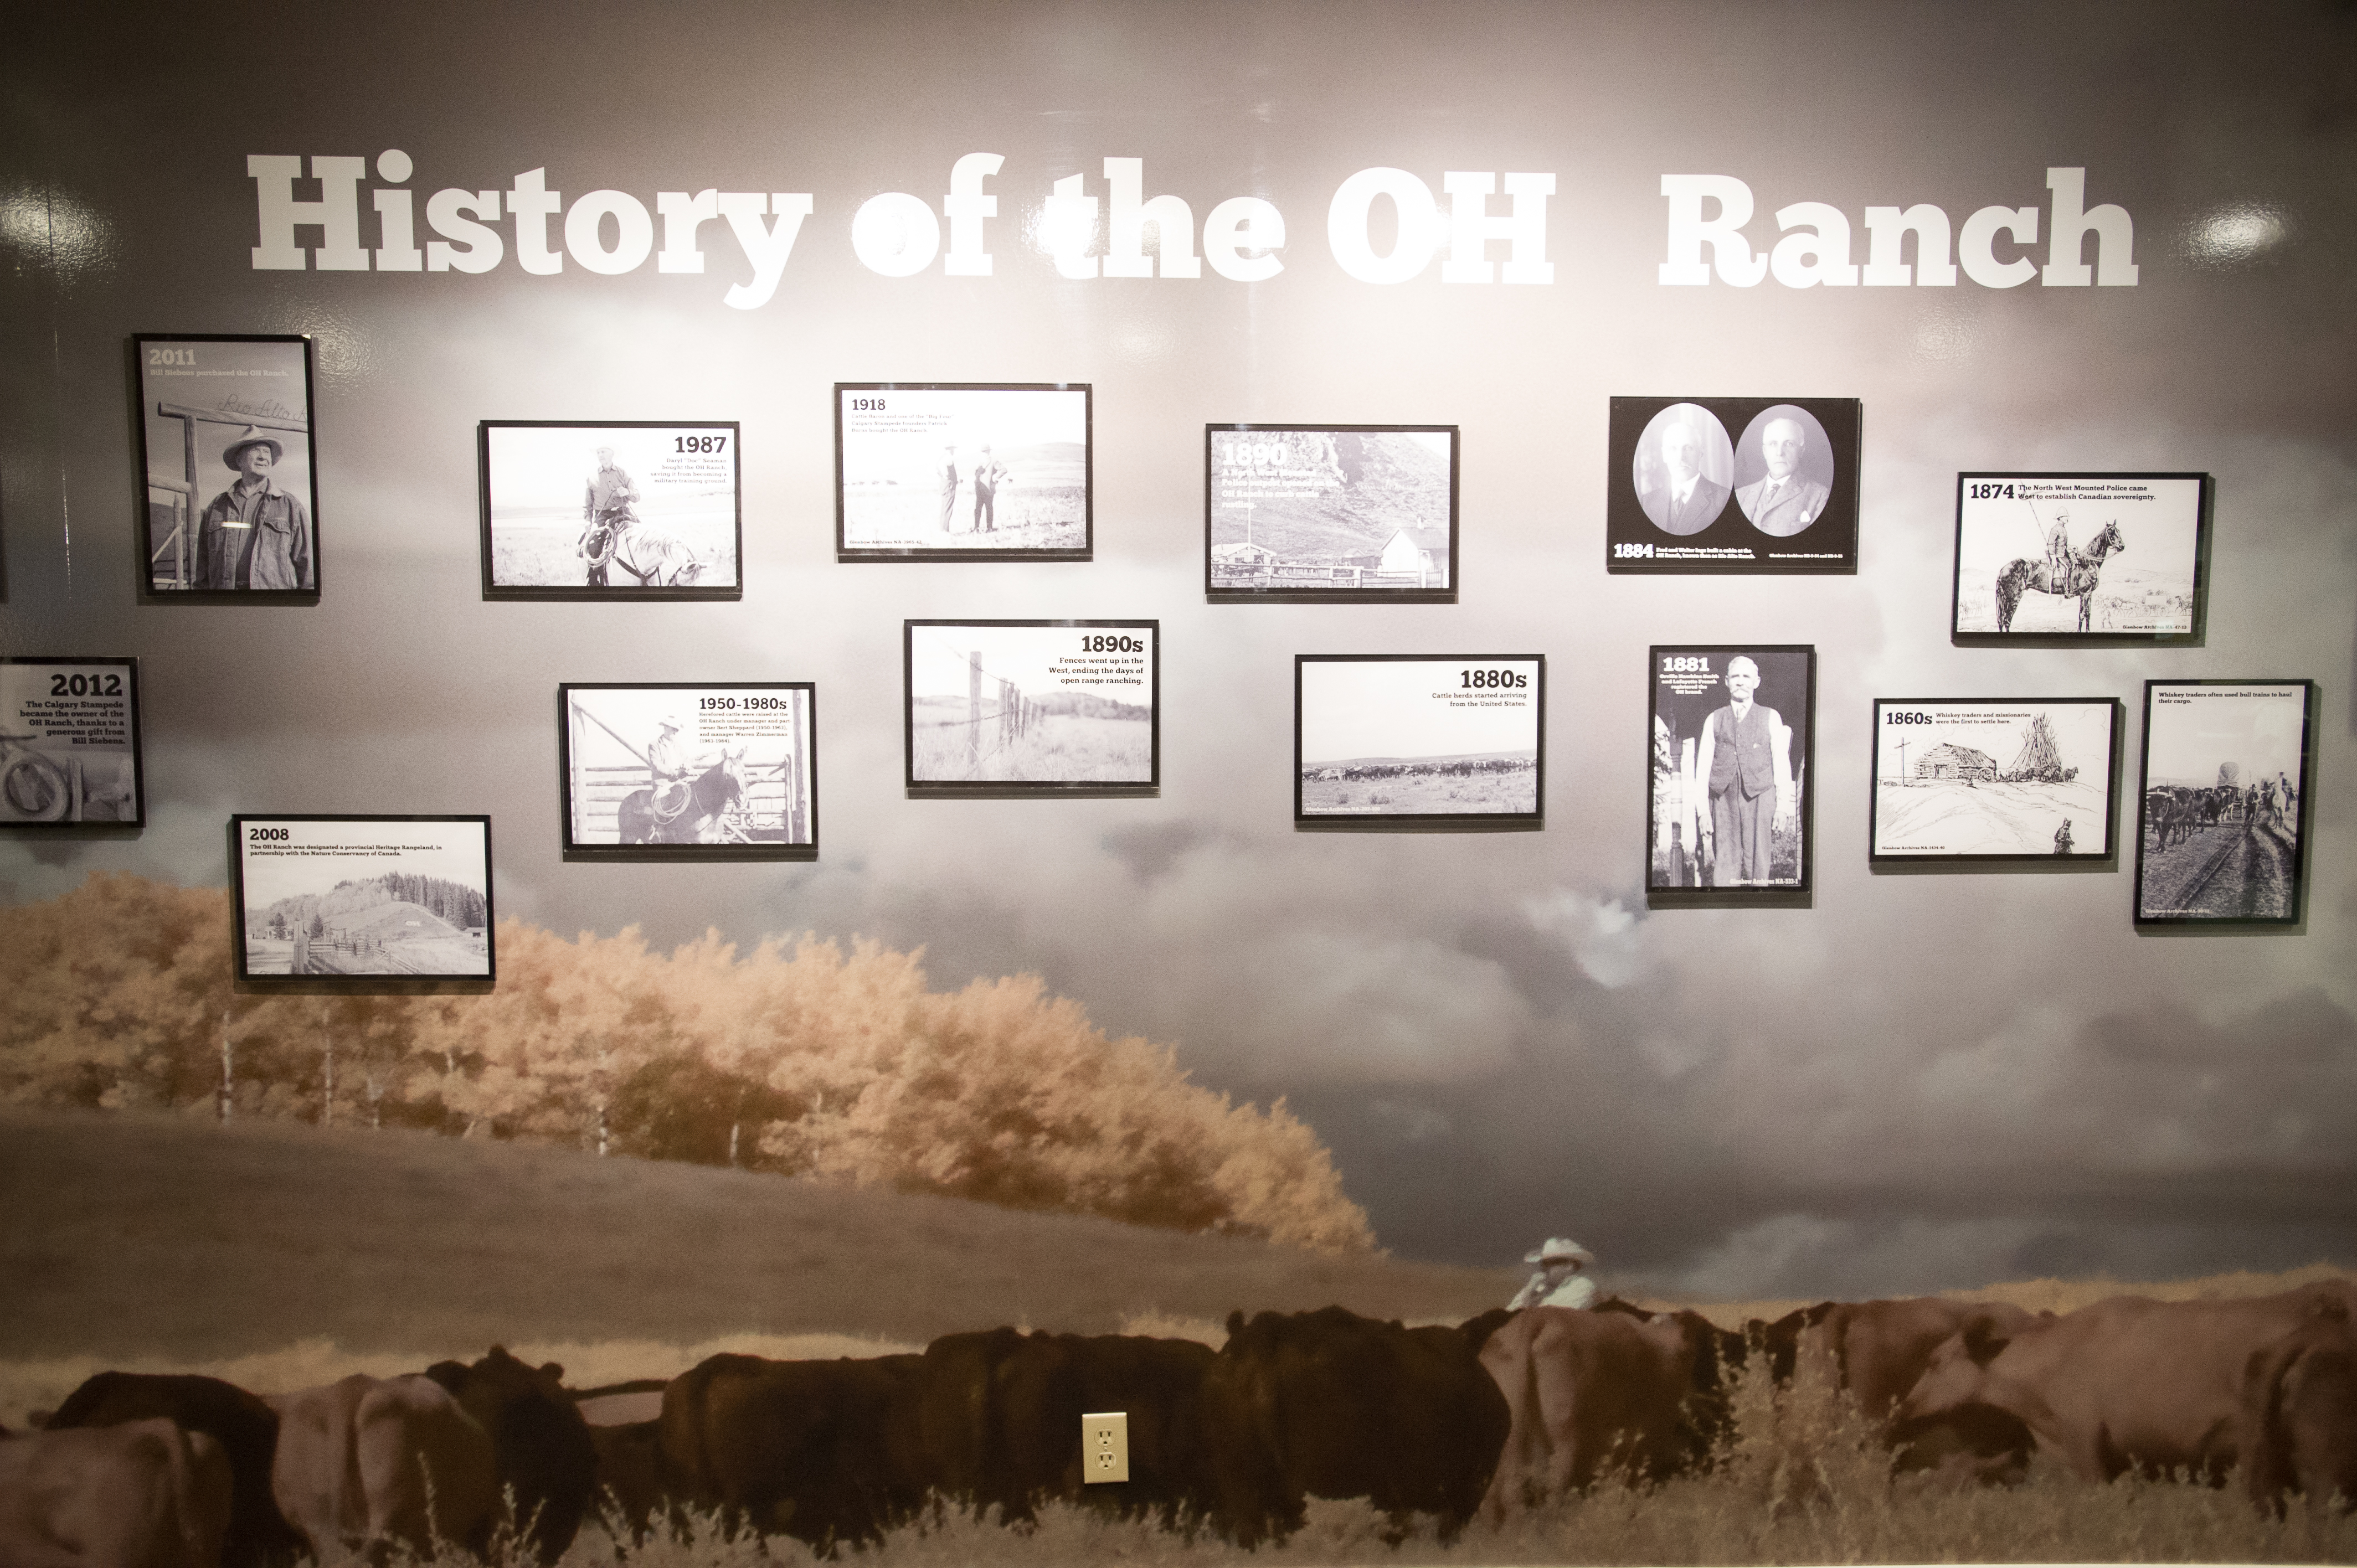 Introducing The Calgary Stampede Oh Ranch Historical